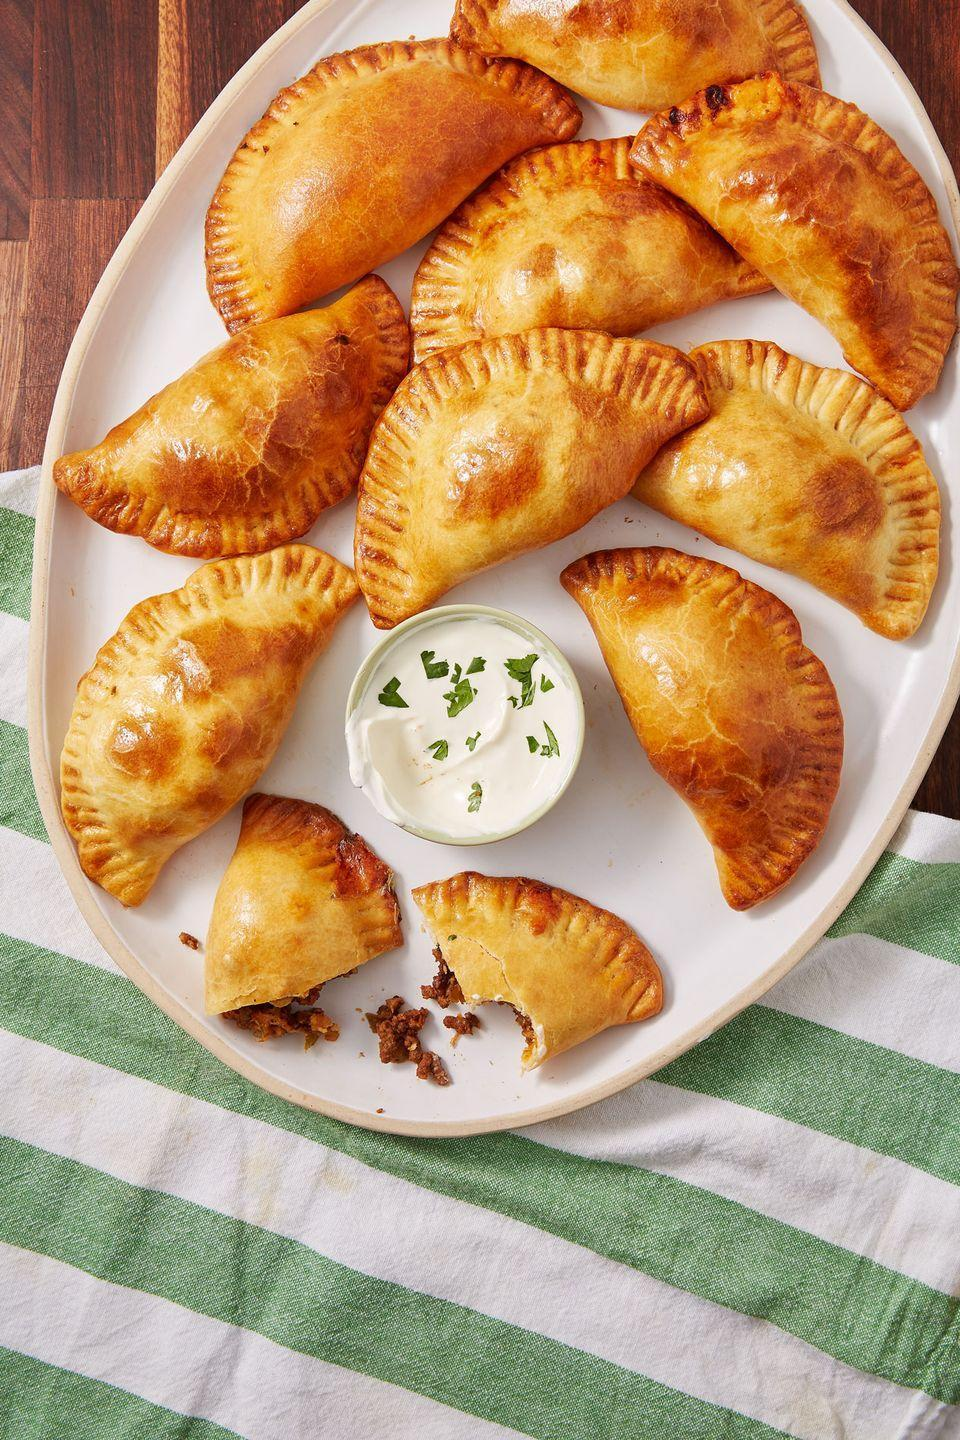 "<p>Everything you could ever want in one convenient pocket.</p><p>Get the recipe from <a href=""https://www.delish.com/cooking/recipe-ideas/recipes/a52606/cheesy-beef-empanadas-recipe/"" rel=""nofollow noopener"" target=""_blank"" data-ylk=""slk:Delish"" class=""link rapid-noclick-resp"">Delish</a>.</p>"